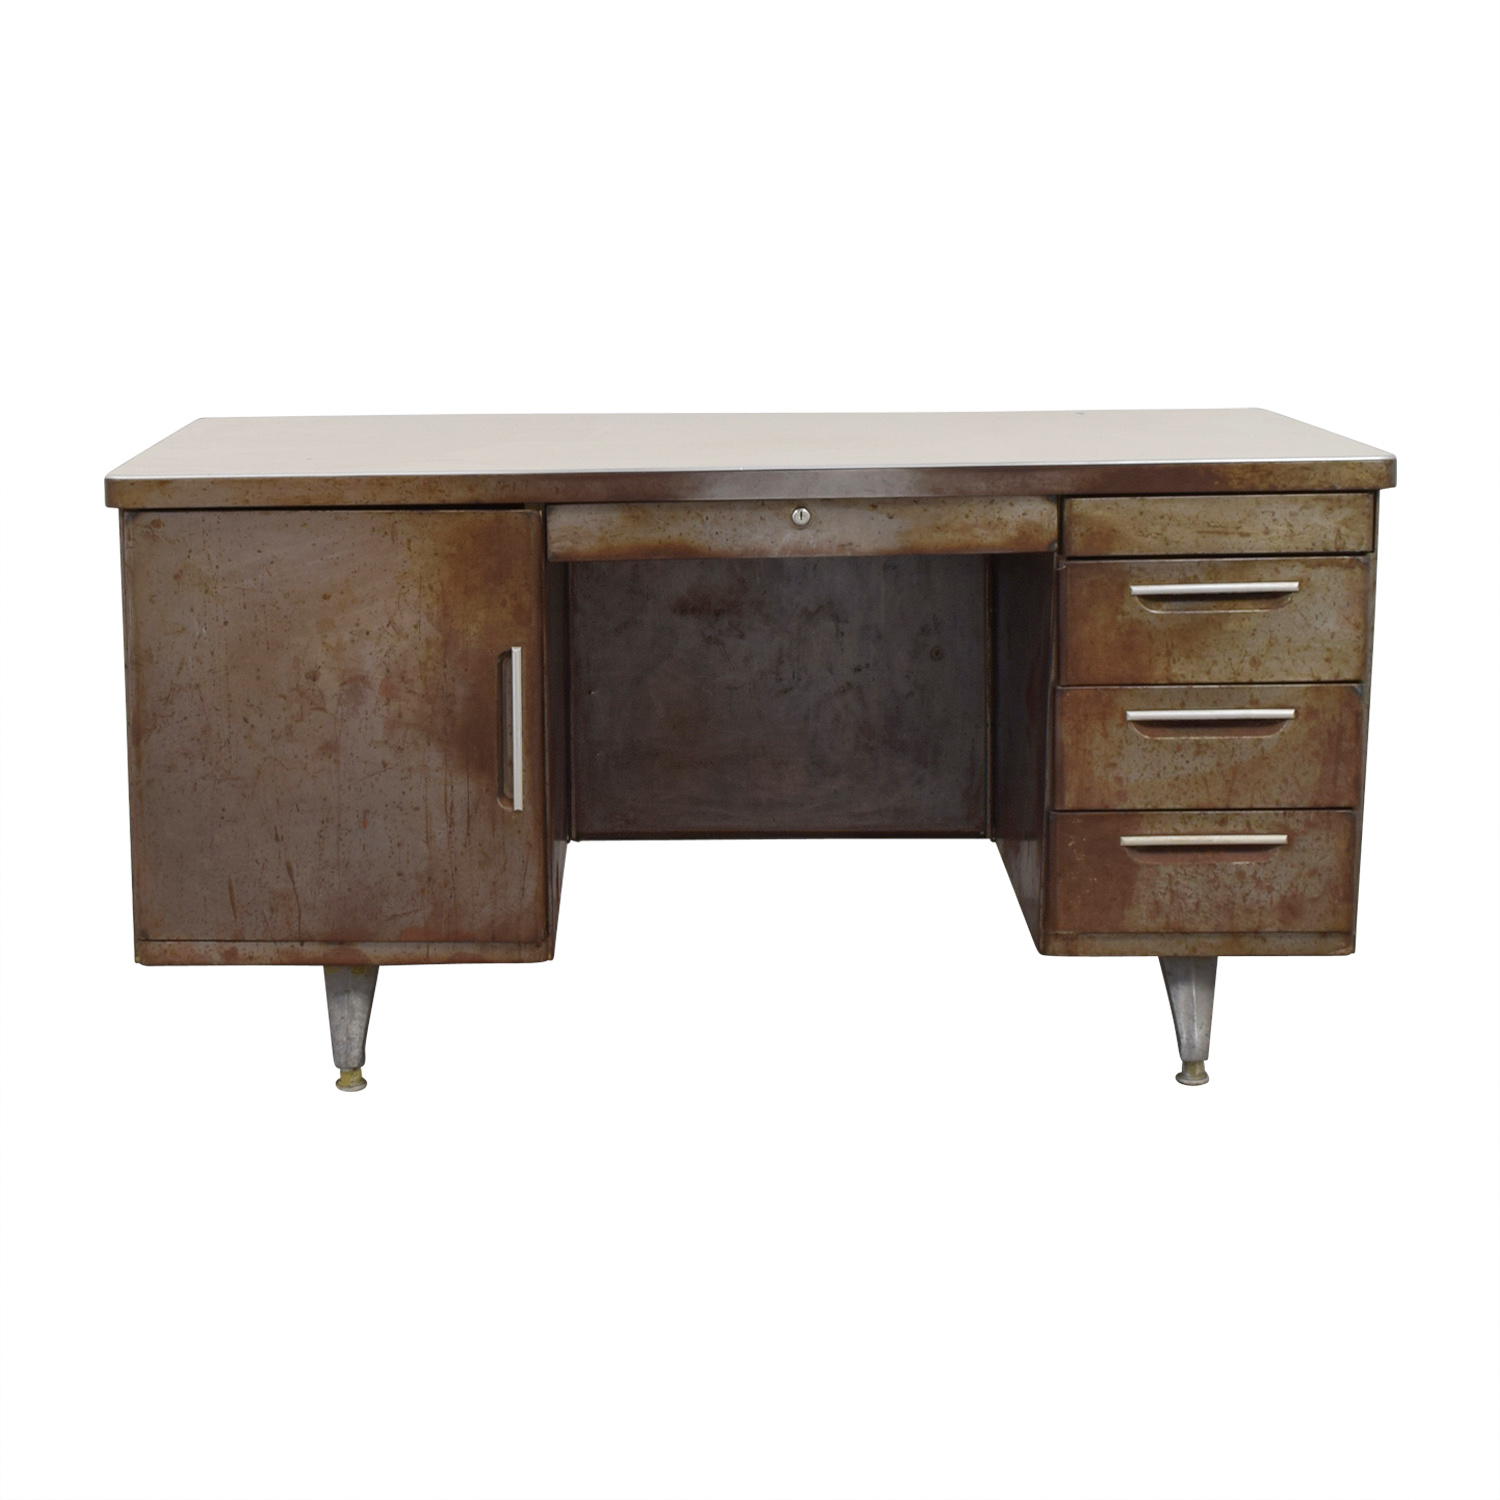 Shaw Walker Shaw Walker Rustic Metal Desk discount